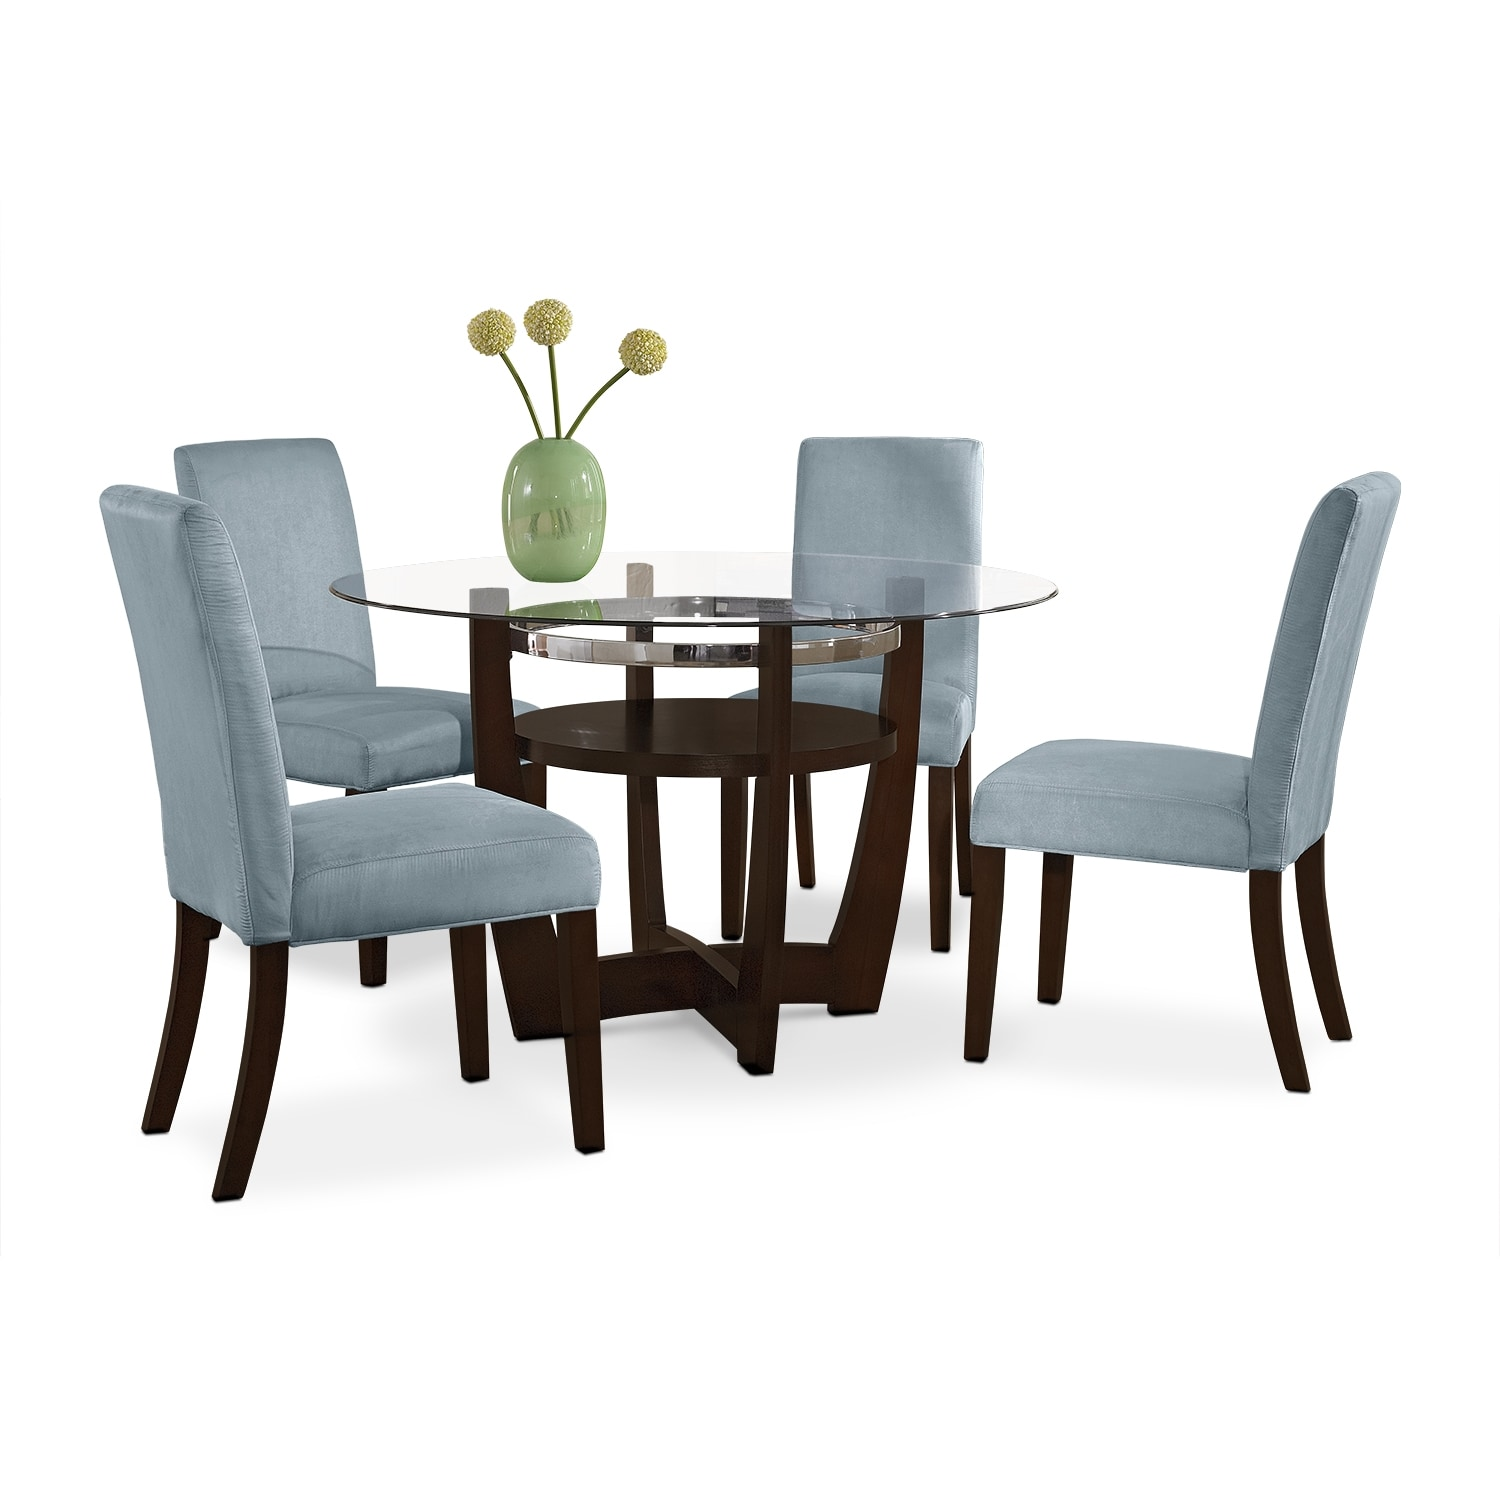 Alcove Dinette With 4 Side Chairs   Aqua